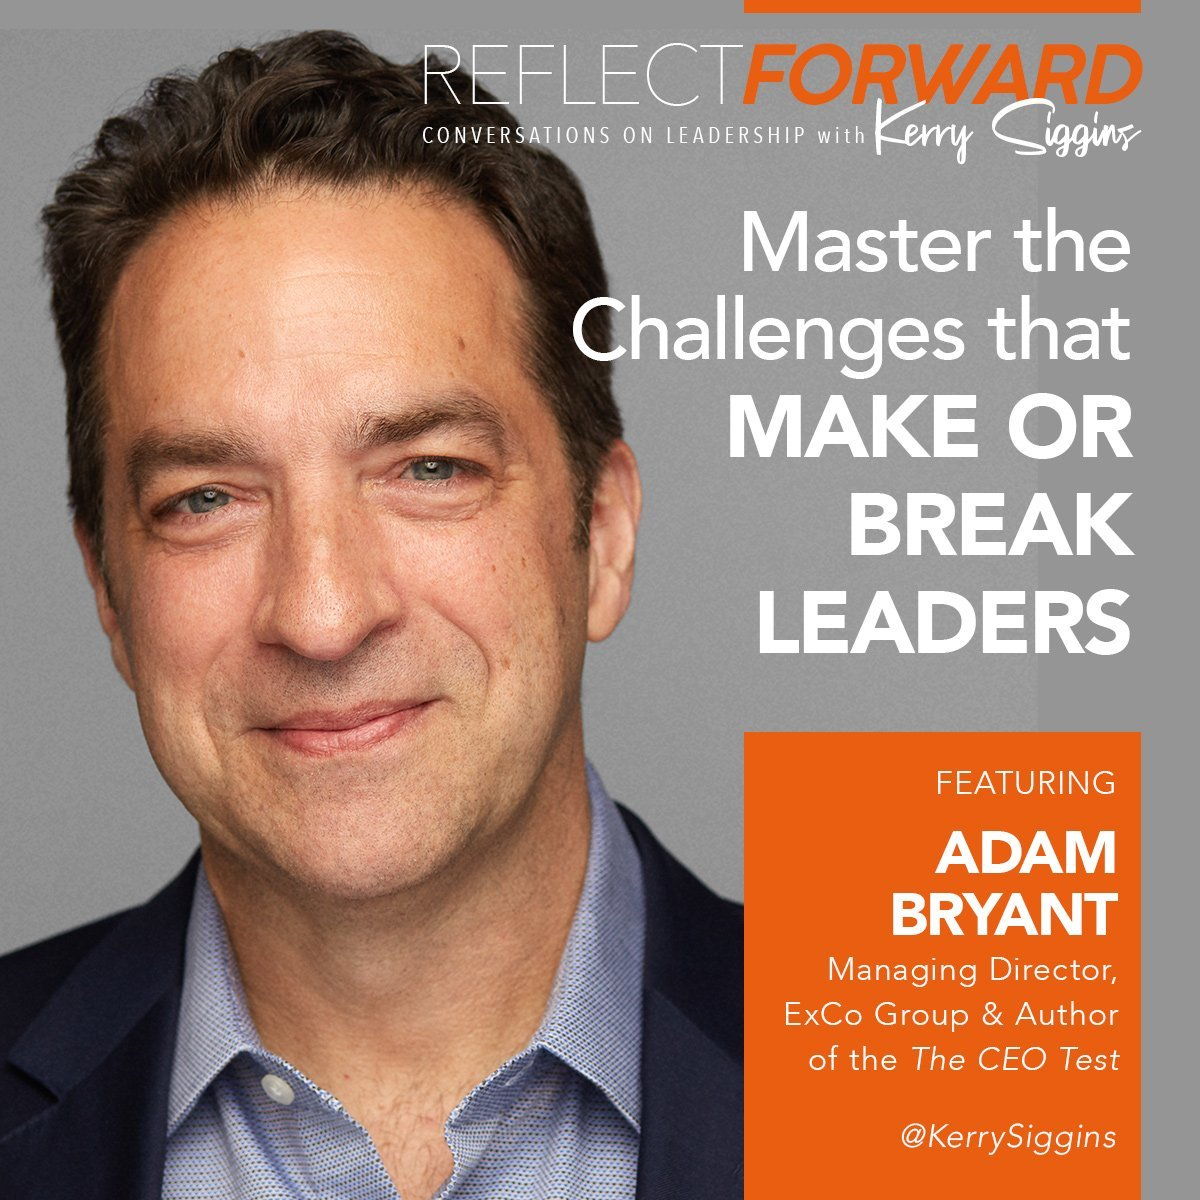 Master the Challenges That Make or Break All Leaders Kerry Siggins and Adam Bryant on Reflect Forward